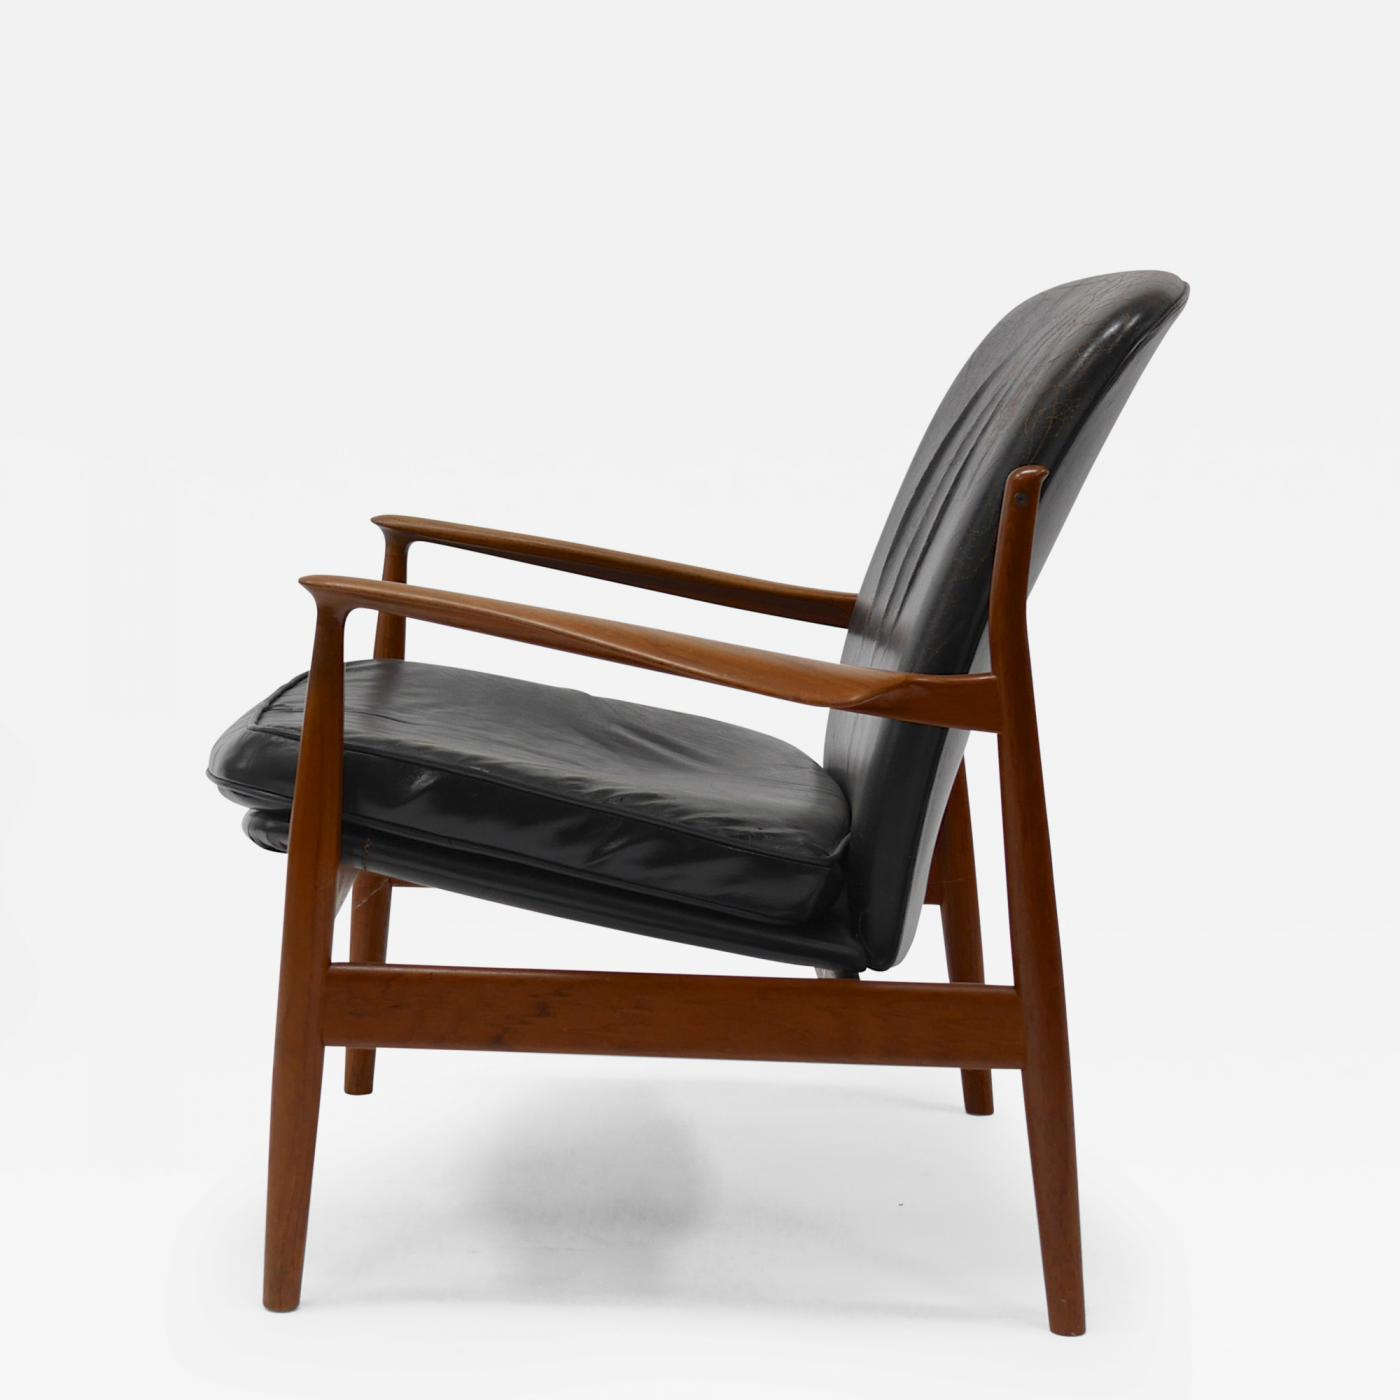 Listings / Furniture / Seating / Lounge Chairs · Finn Juhl ...